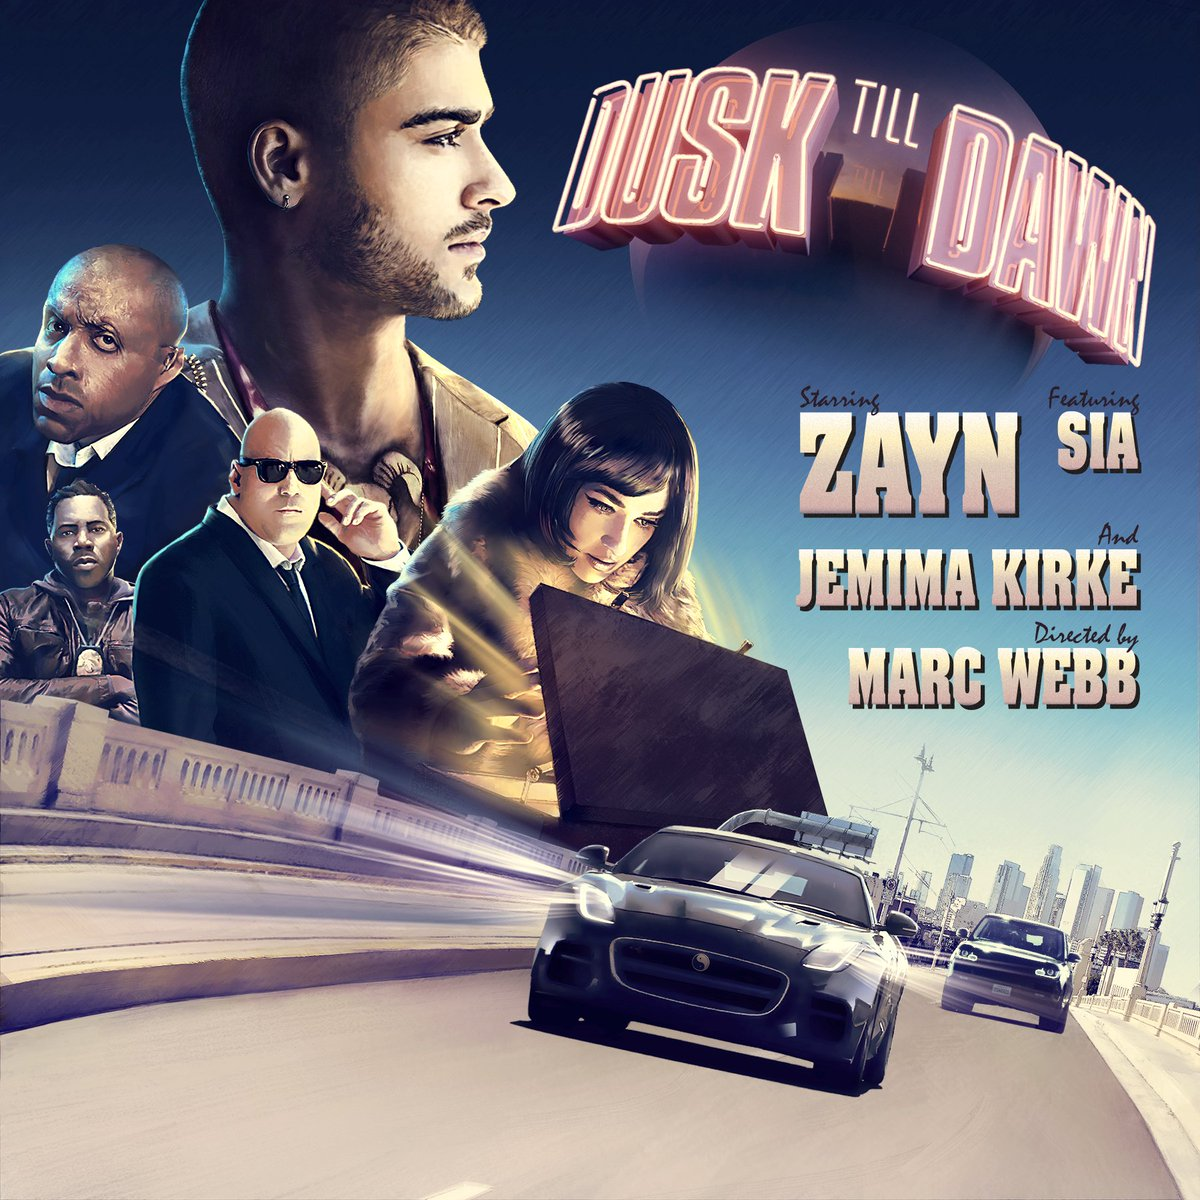 Get excited‼️‼️‼️‼️ #DuskTillDawn @zaynmalik ft @Sia • 7th Sept https://t.co/bbABLEsChr